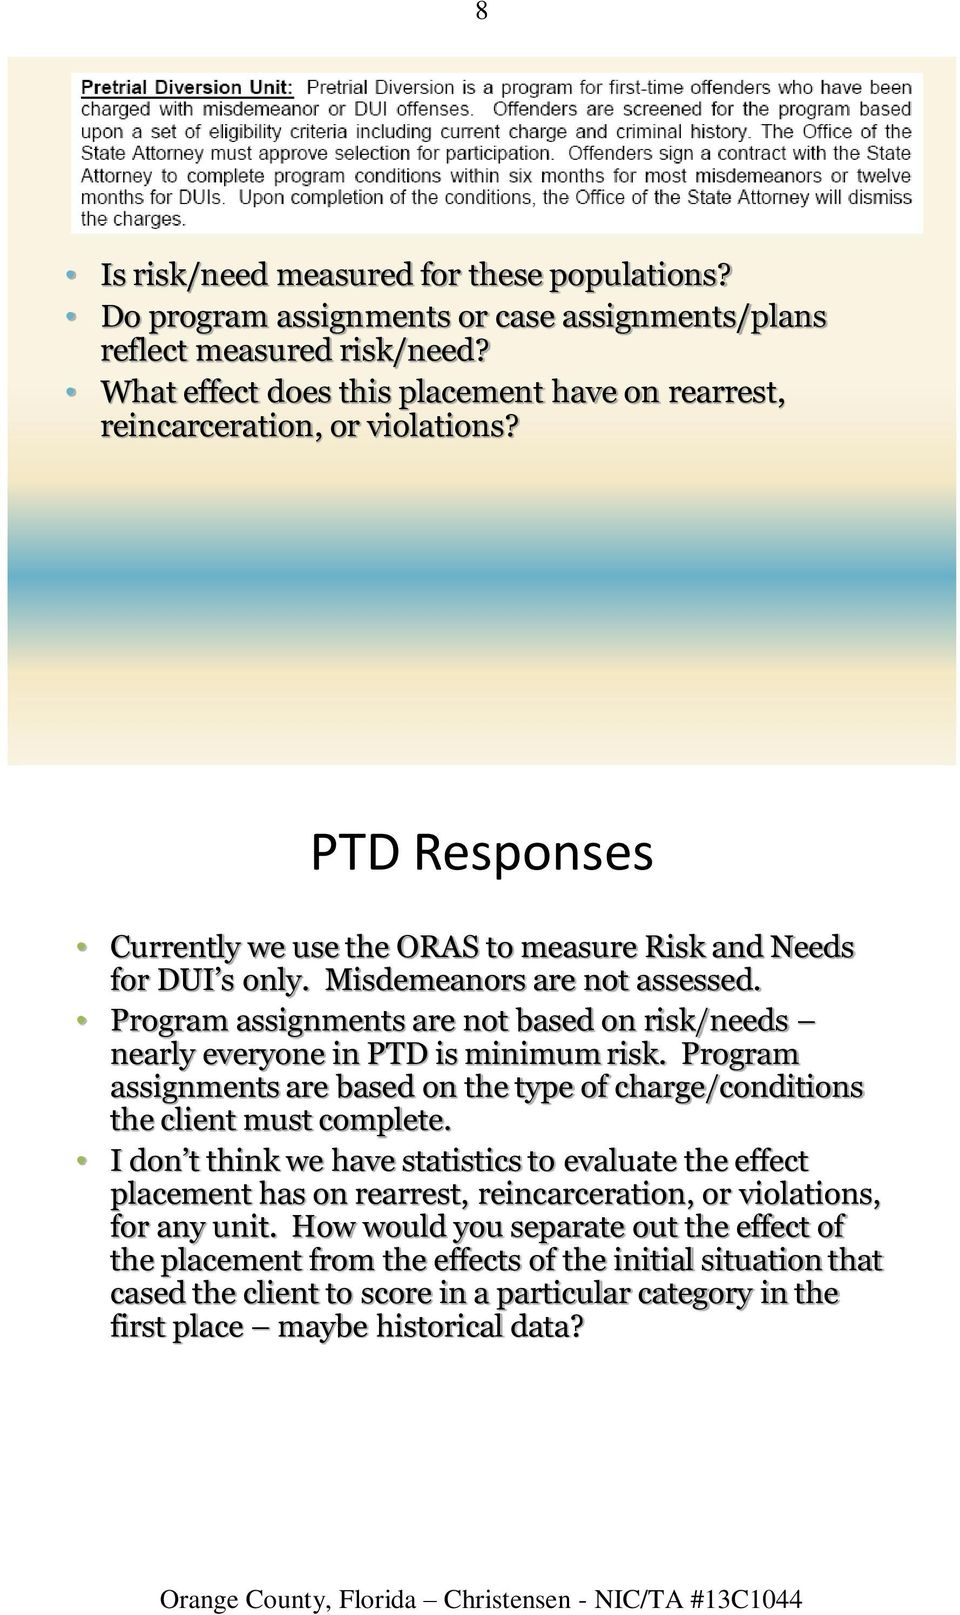 Program assignments are not based on risk/needs nearly everyone in PTD is minimum risk. Program assignments are based on the type of charge/conditions the client must complete.